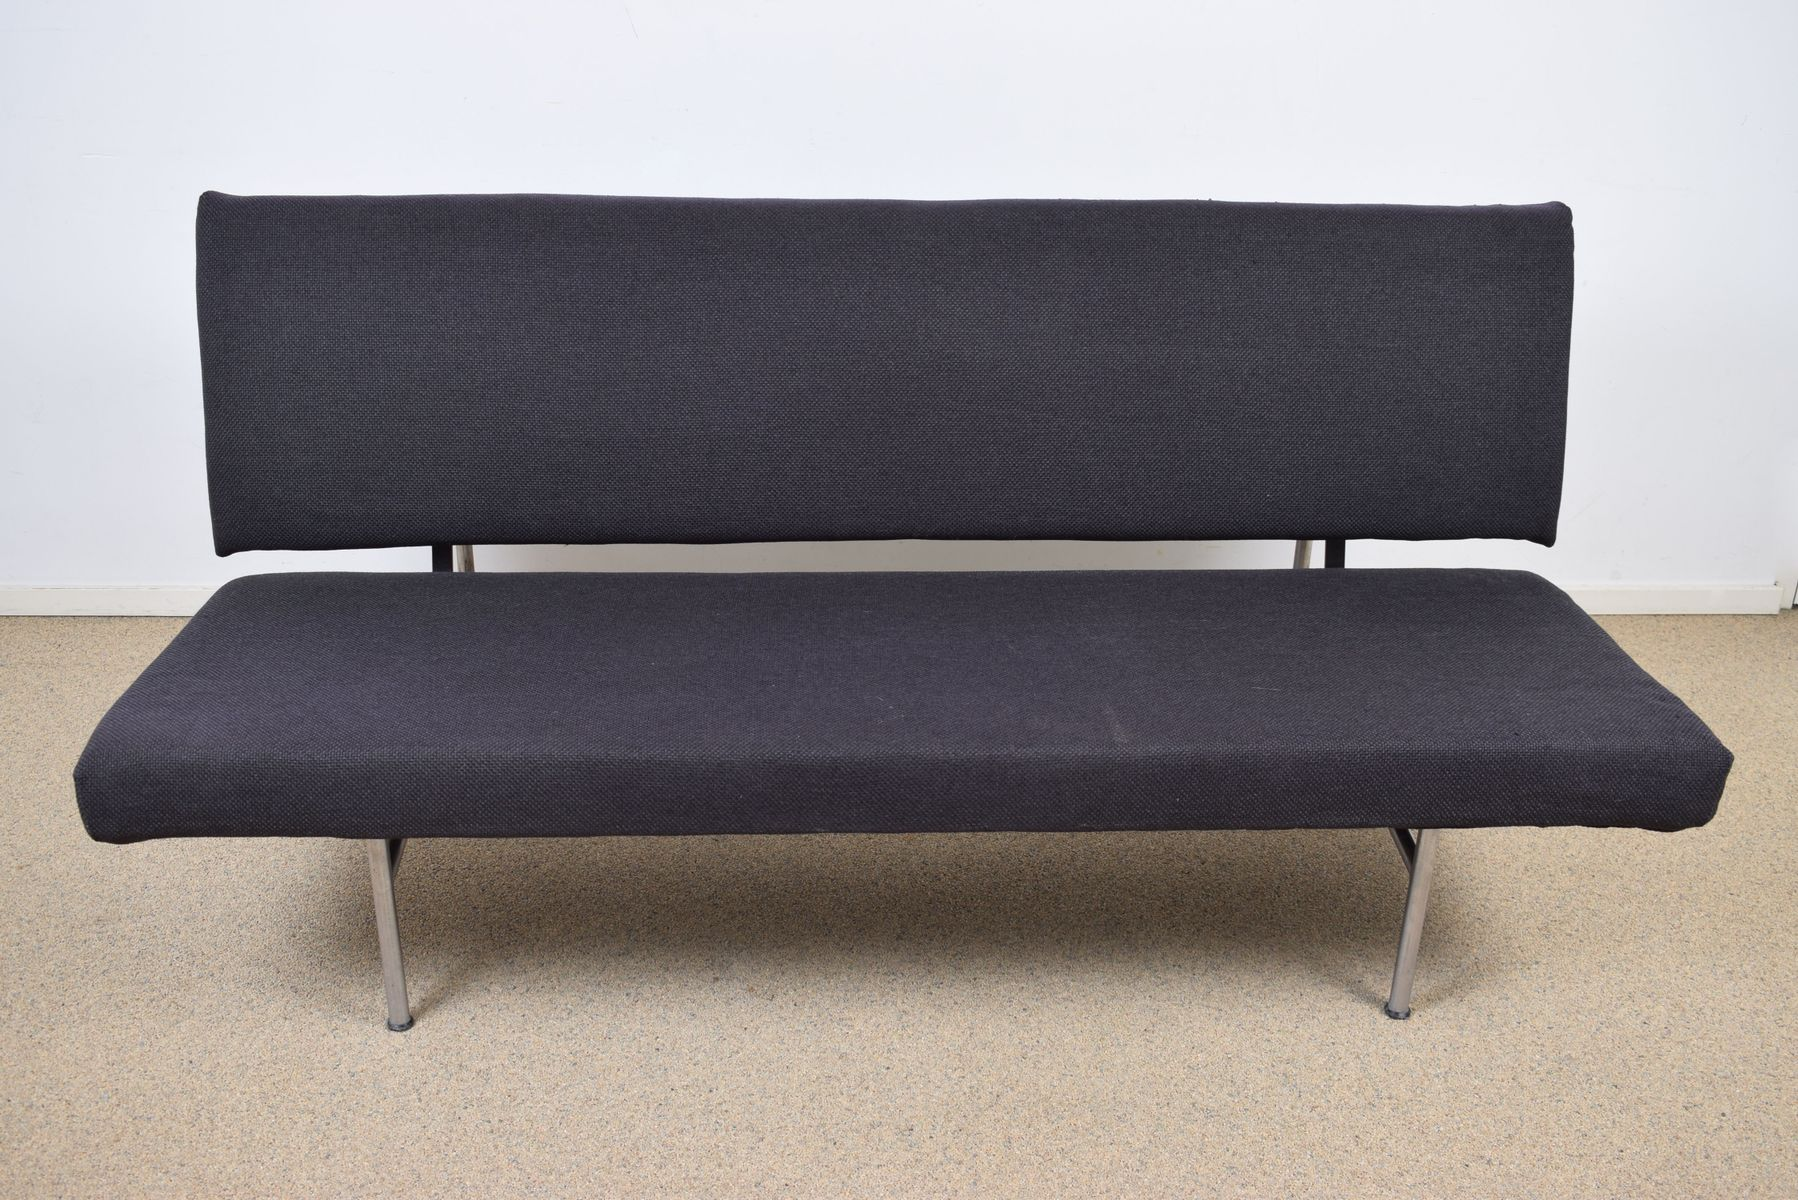 Gispen Sofa Model 1721 Sofa By André Cordemeyer For Gispen 1950s For